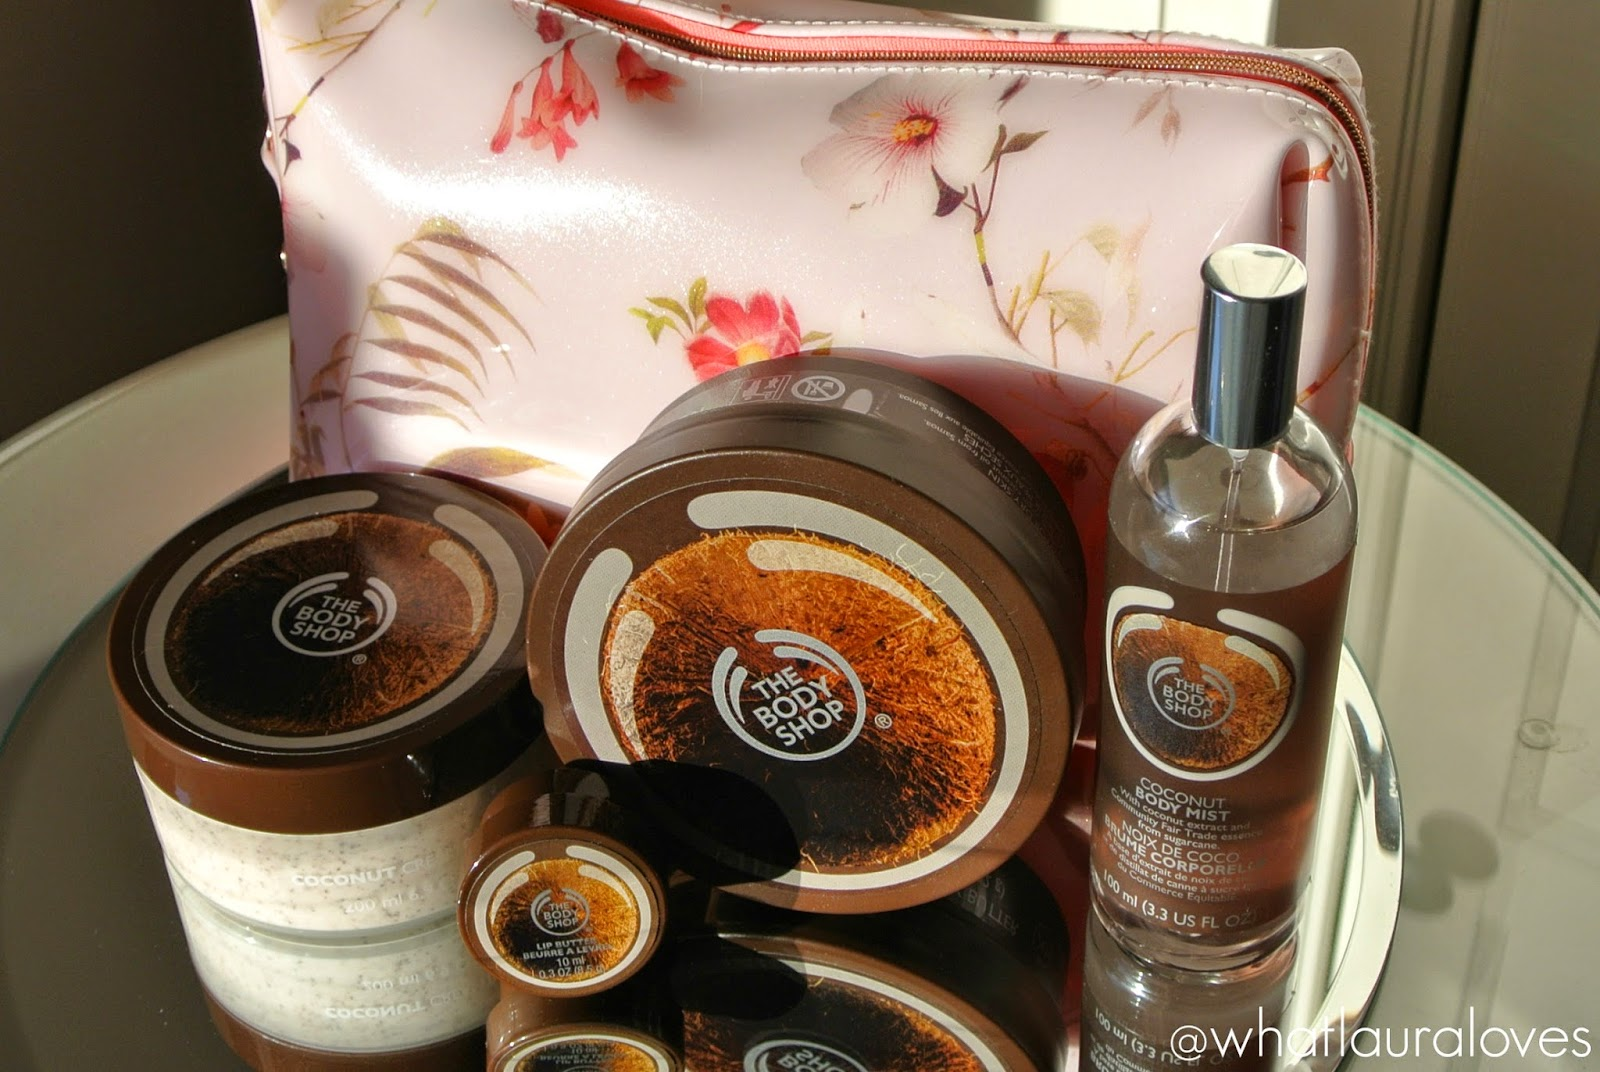 The Body Shop Coconut Range Gift Set Coconut Body Butter Coconut Body Scrub Body Fragrance Mist Lip Butter